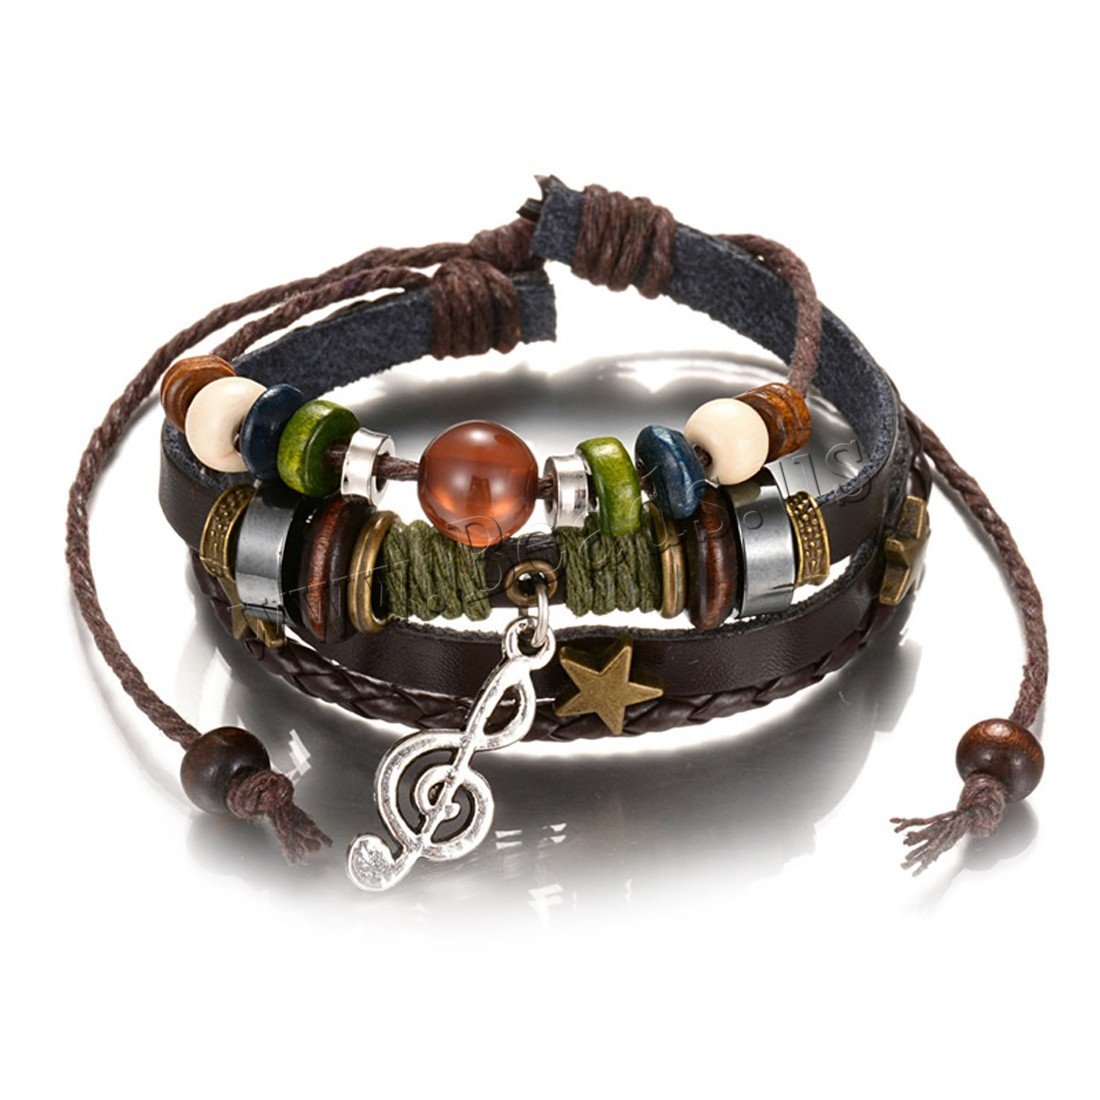 Buy PU Leather Cord Bracelets Zinc Alloy PU Leather & Wood plated adjustable & 4-strand colors choice lead & cadmium free 65mm Inner Diameter:Approx 60mm Length:Approx 7 Inch Sold PC